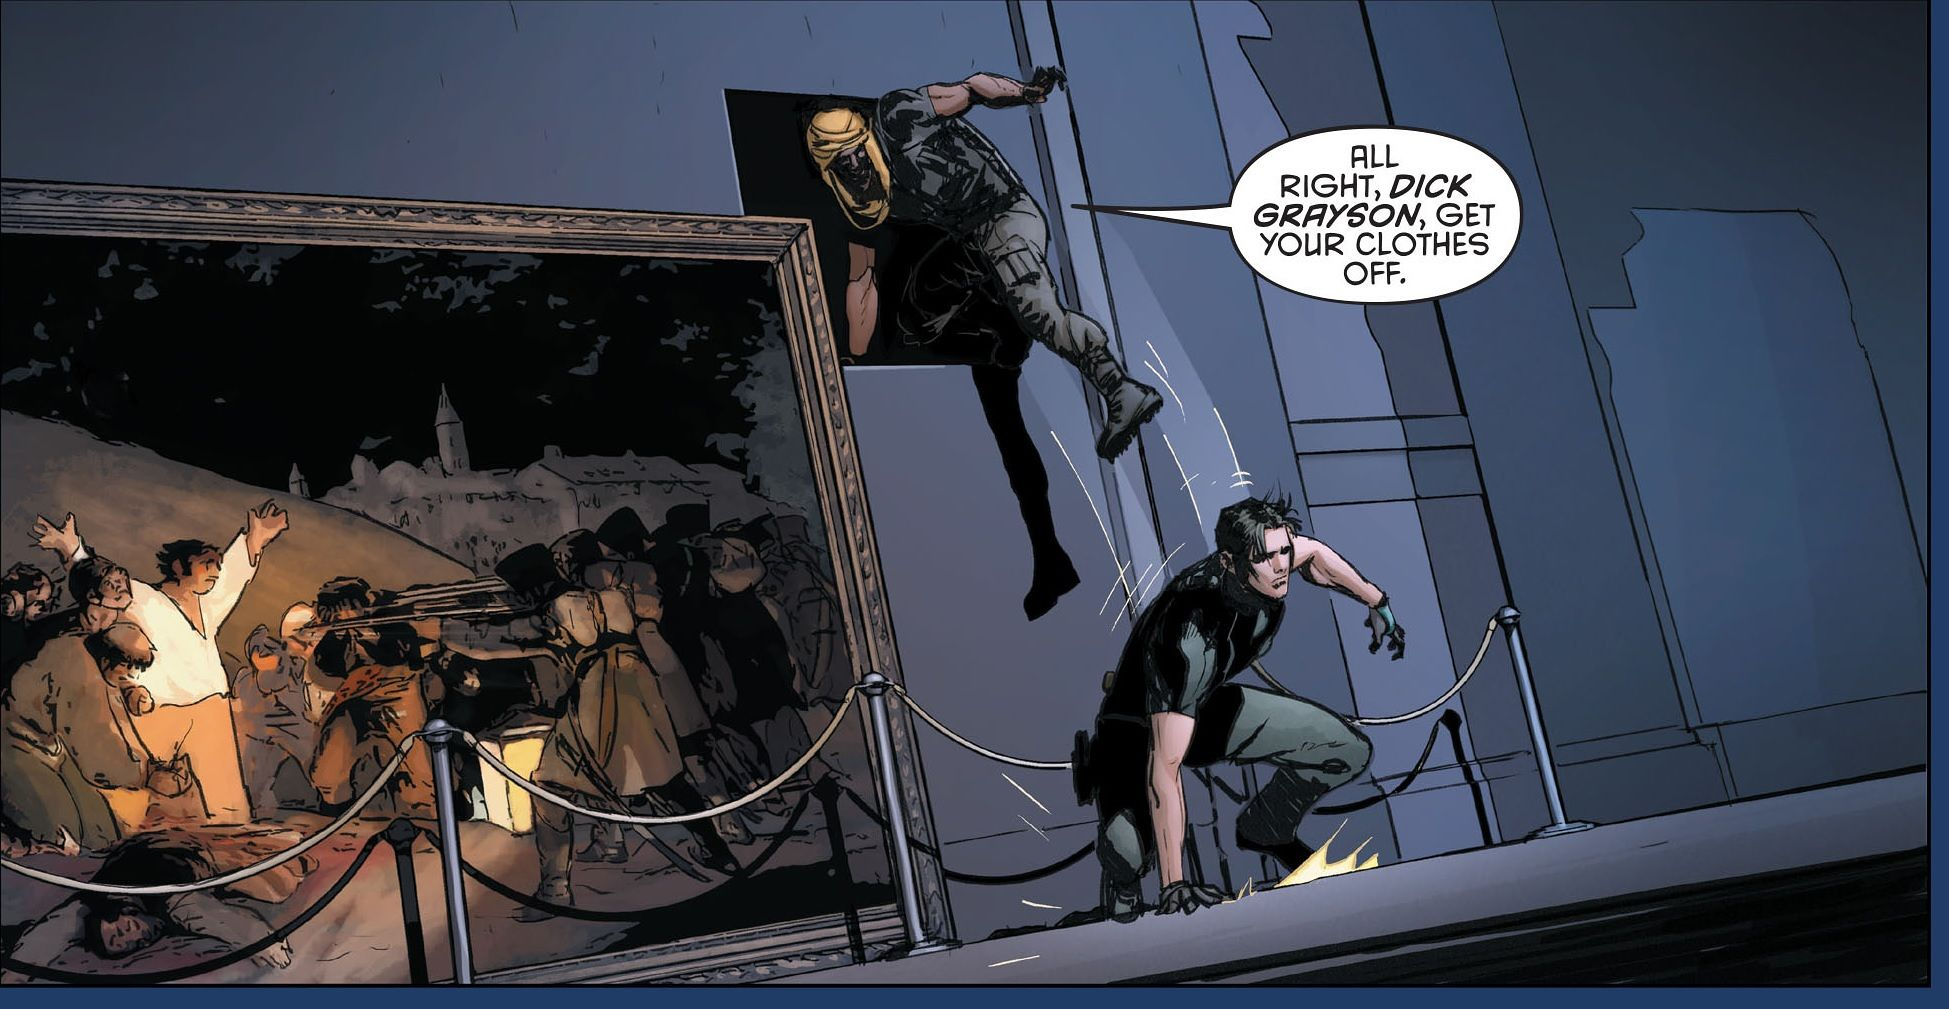 is-dc-deliberately-gay-baiting-nightwing-grayson-s-male-partner-wants-dick-s-clothes-off-473685